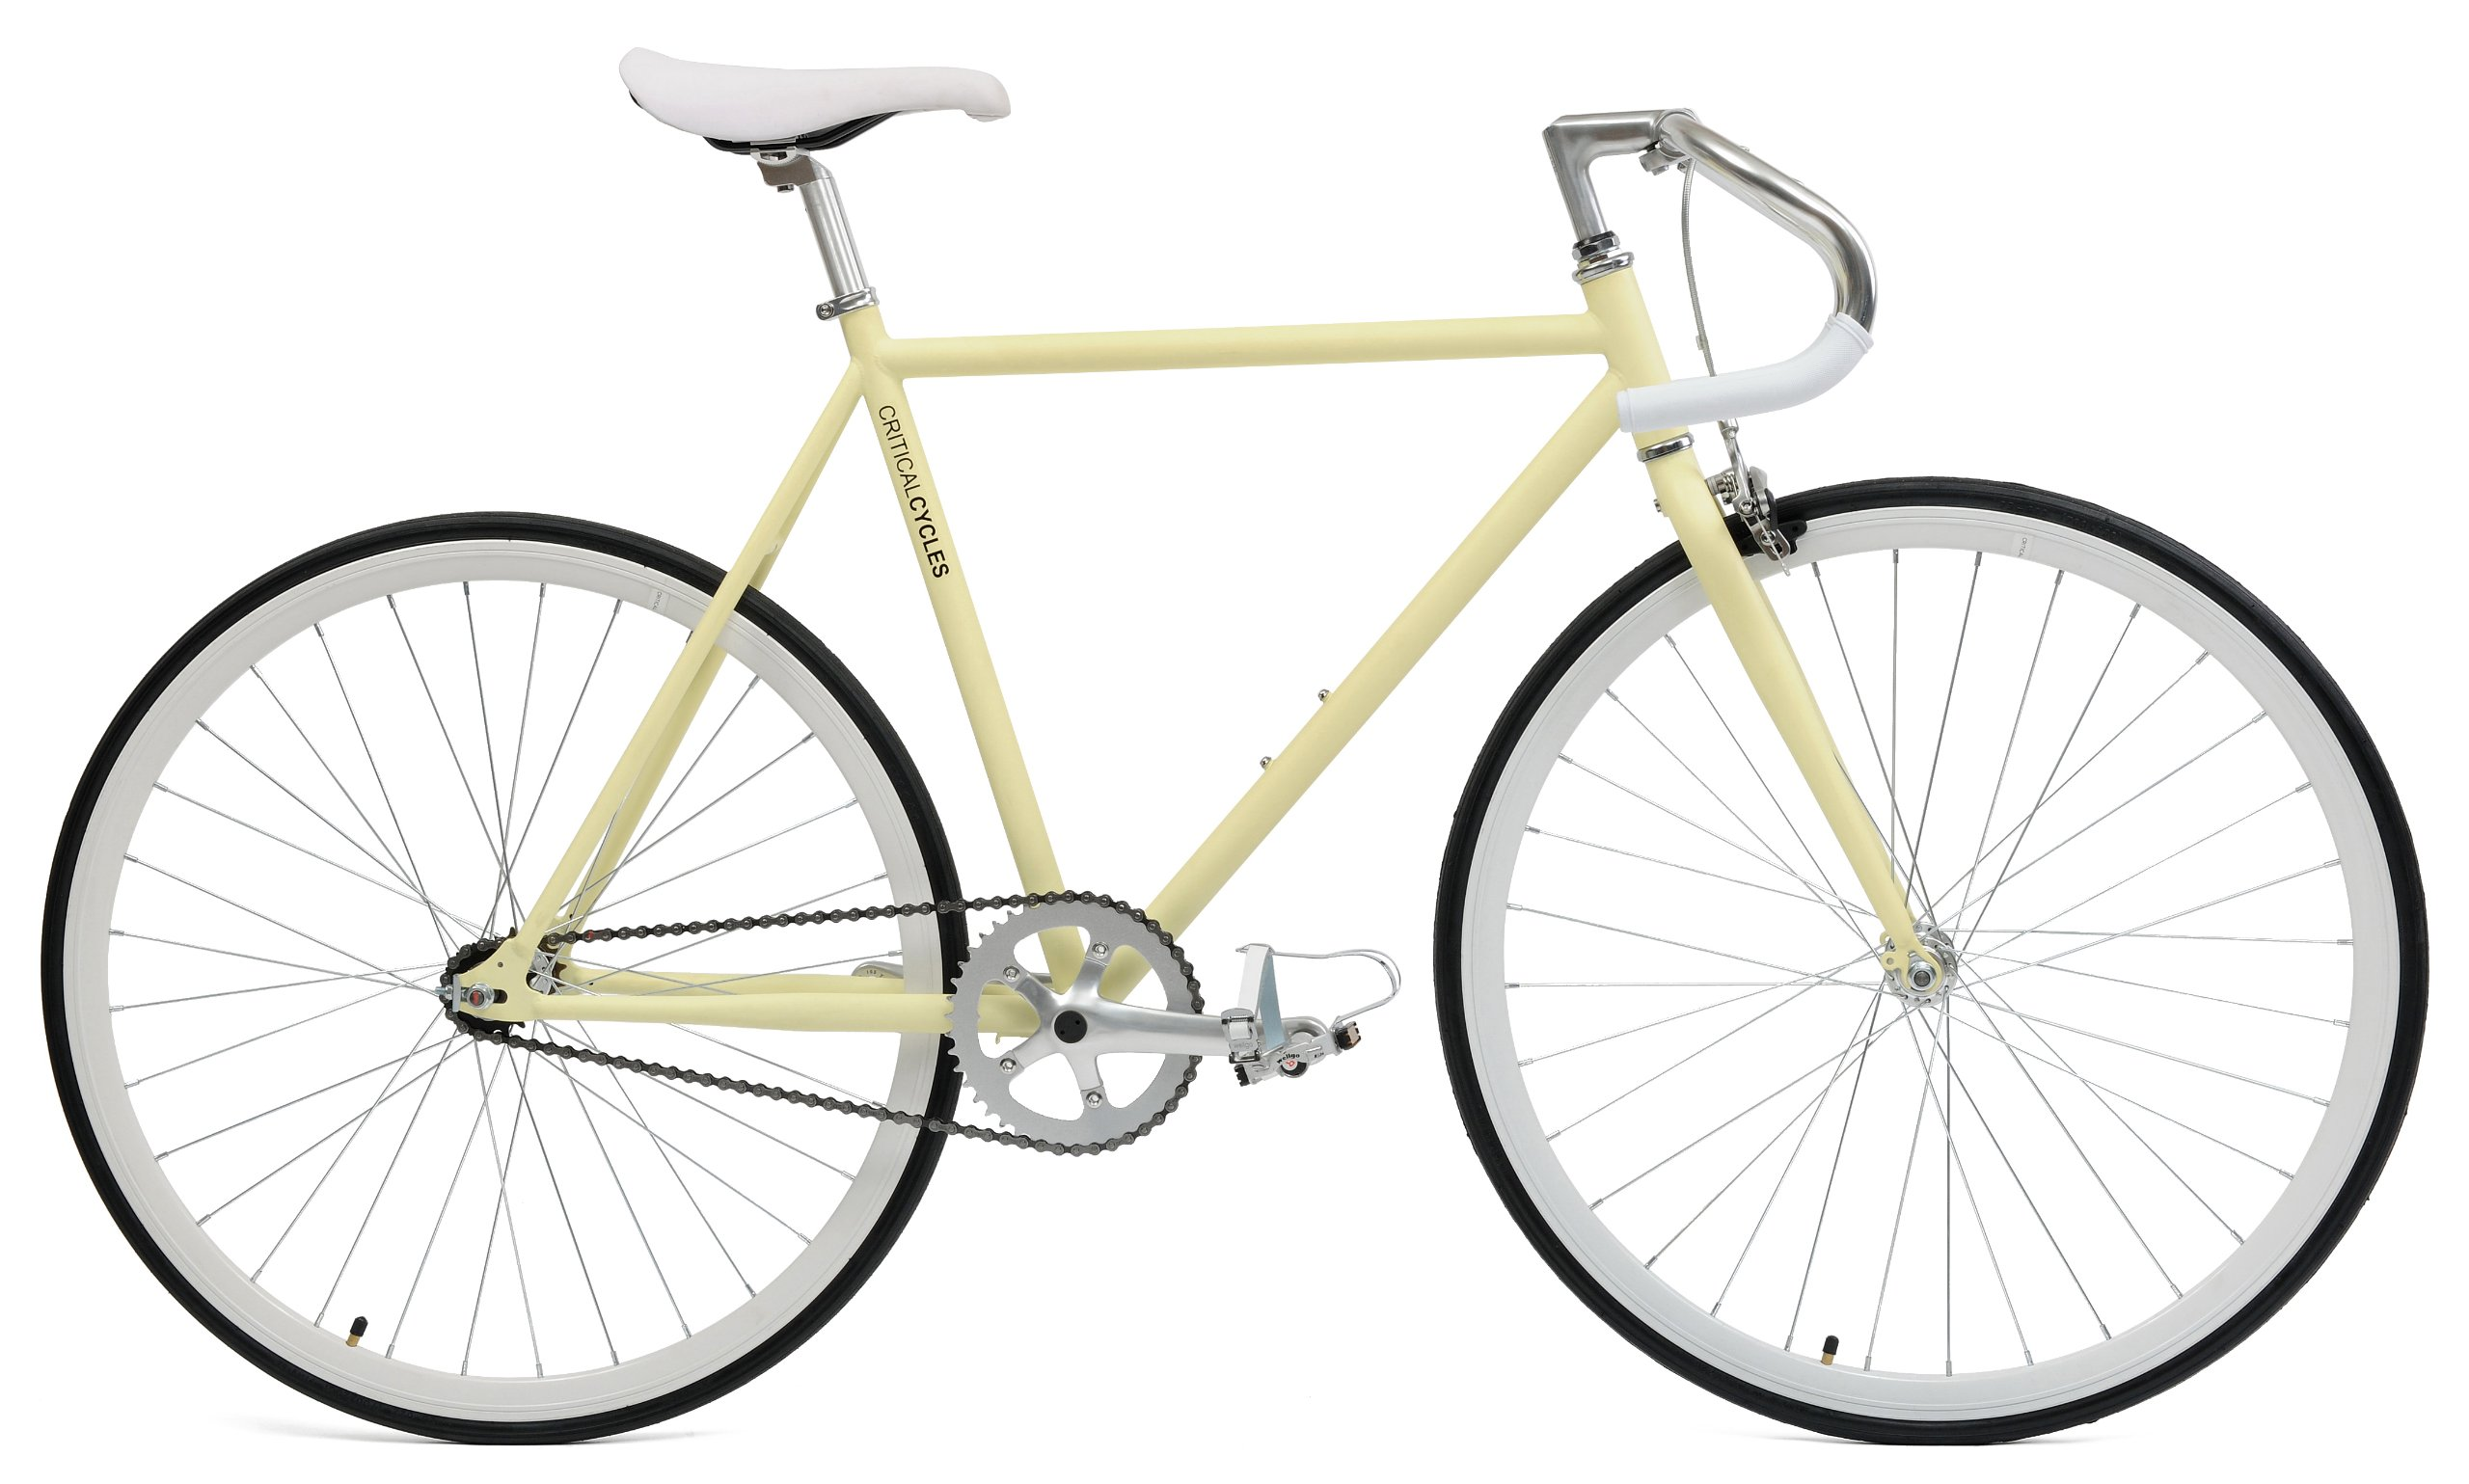 Critical Cycles Classic Fixed-Gear Single-Speed Bike with Pista Drop Bars, Cream